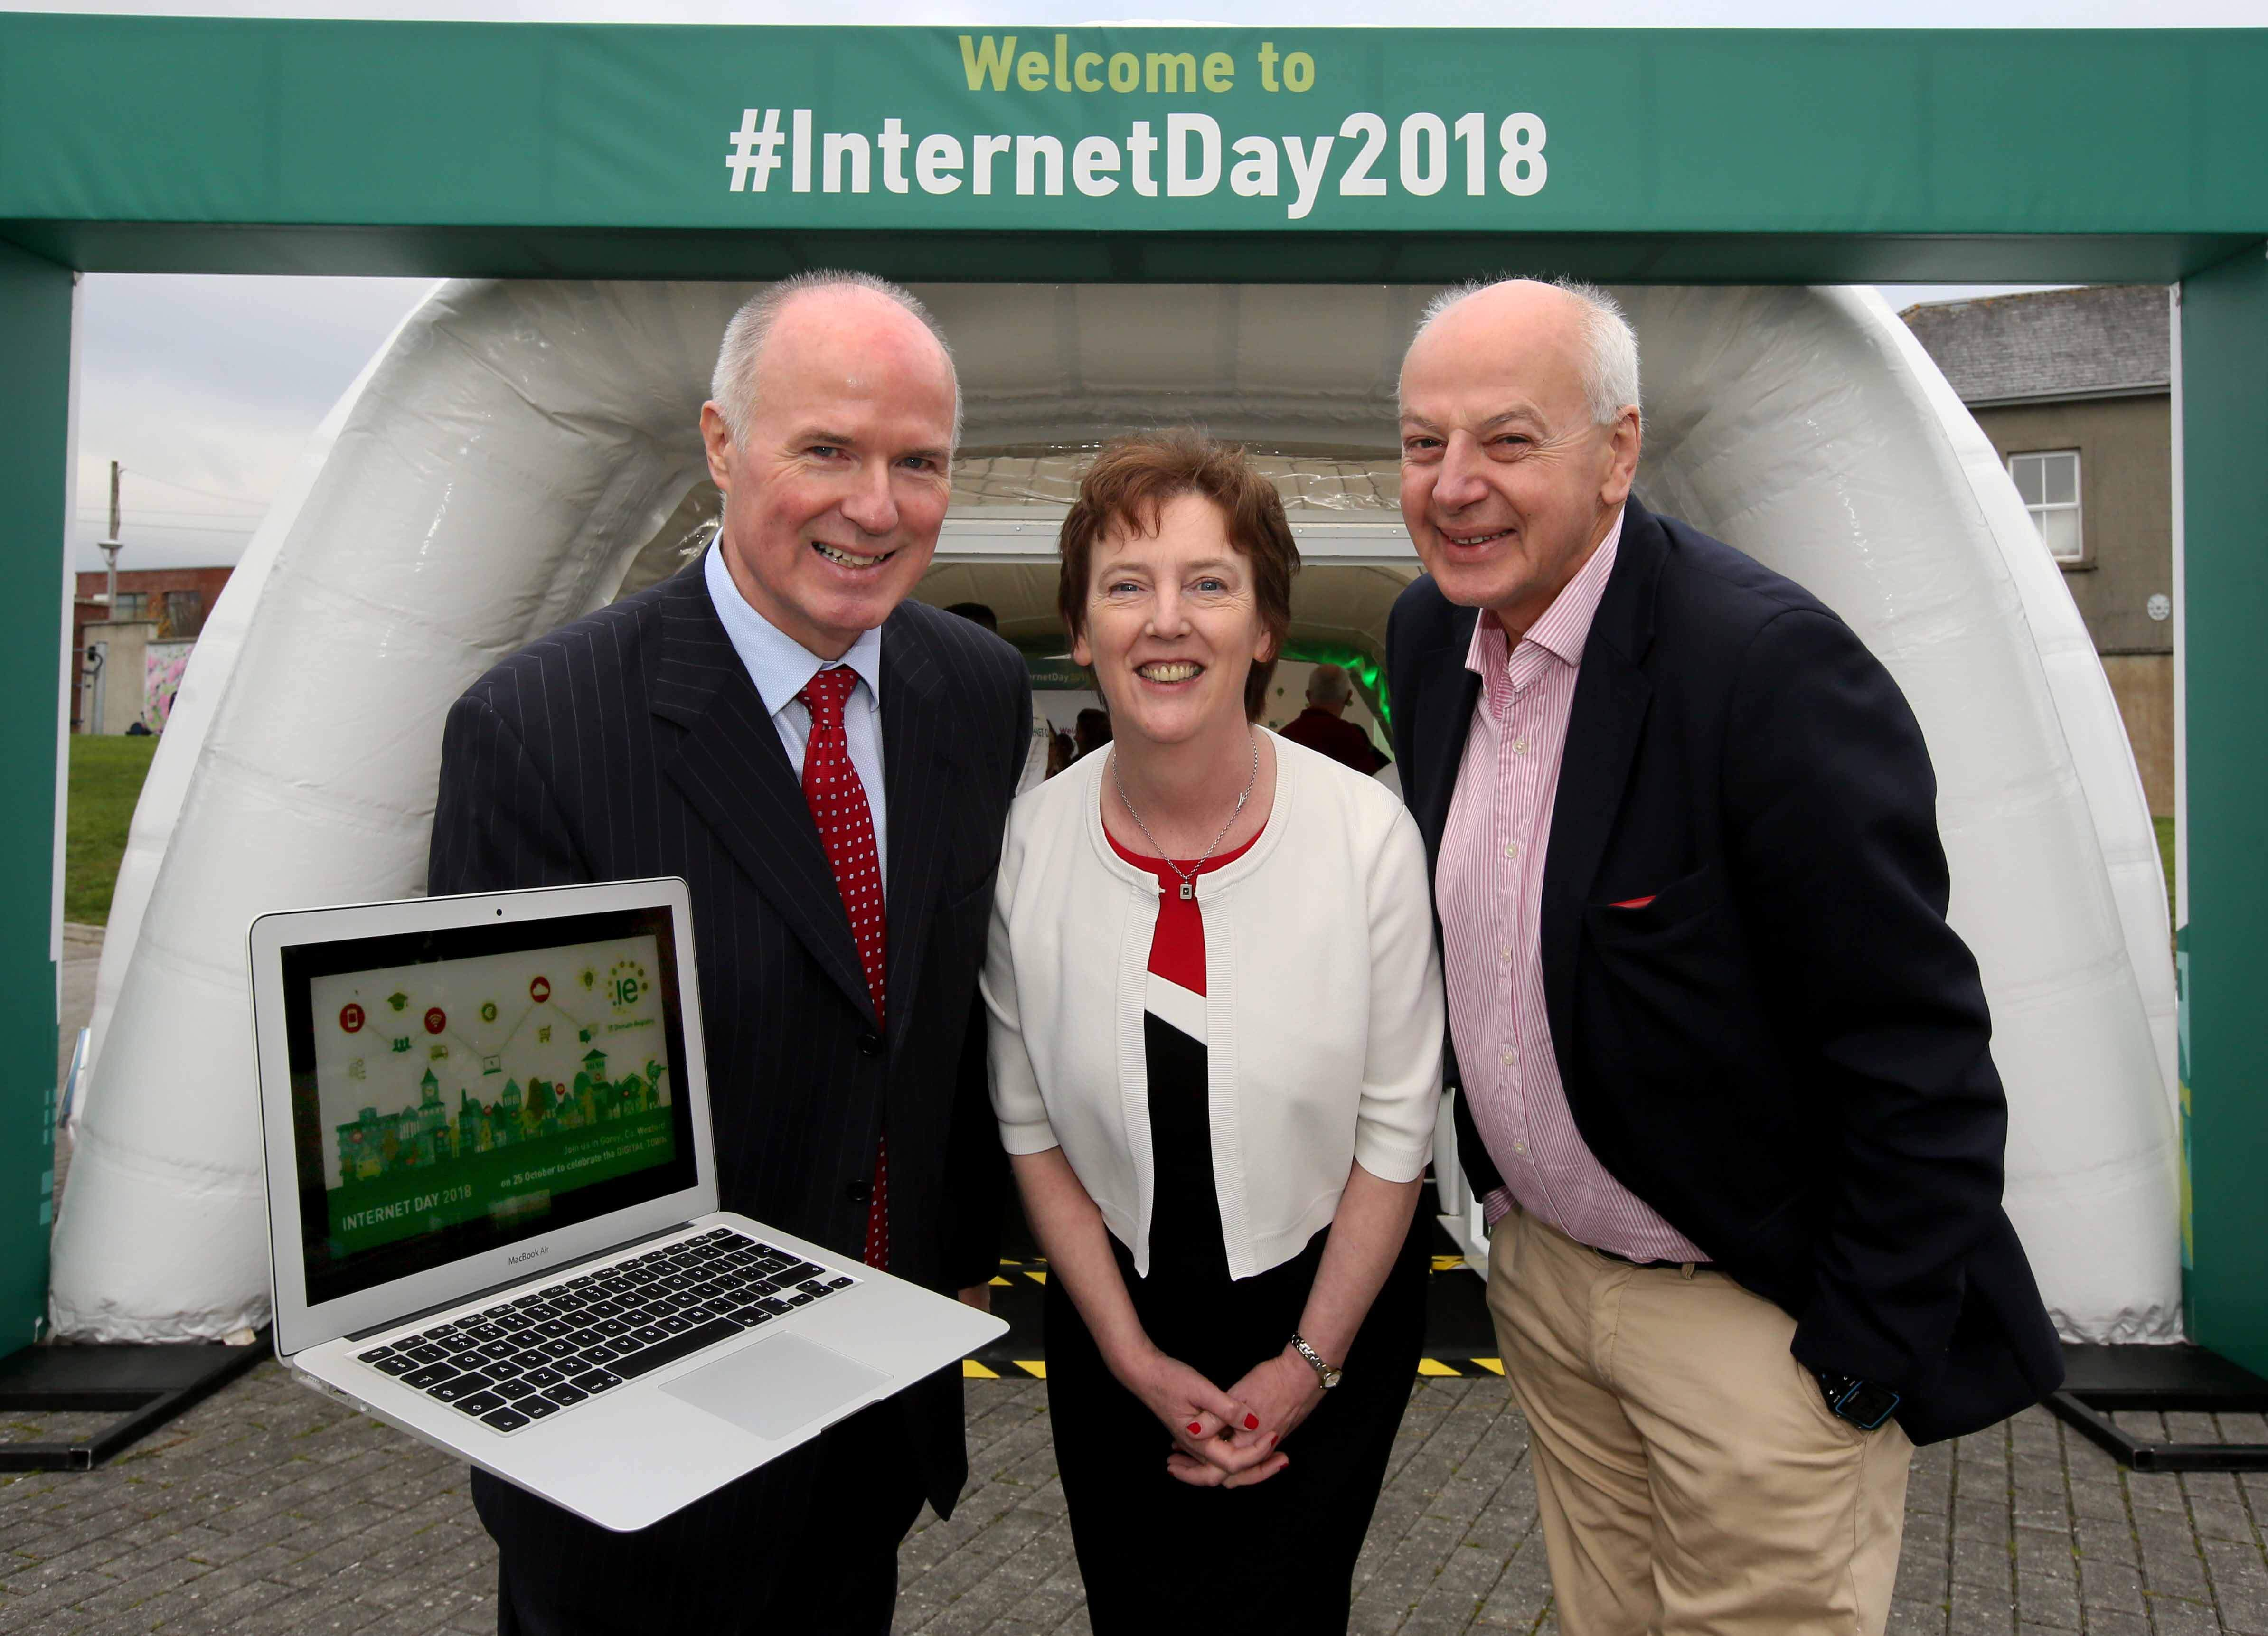 Our CEO David Curtin, Customer Operations Manager Oonagh McCutcheon and MC Bobby Kerr celebrate the launch of Internet Day 2018